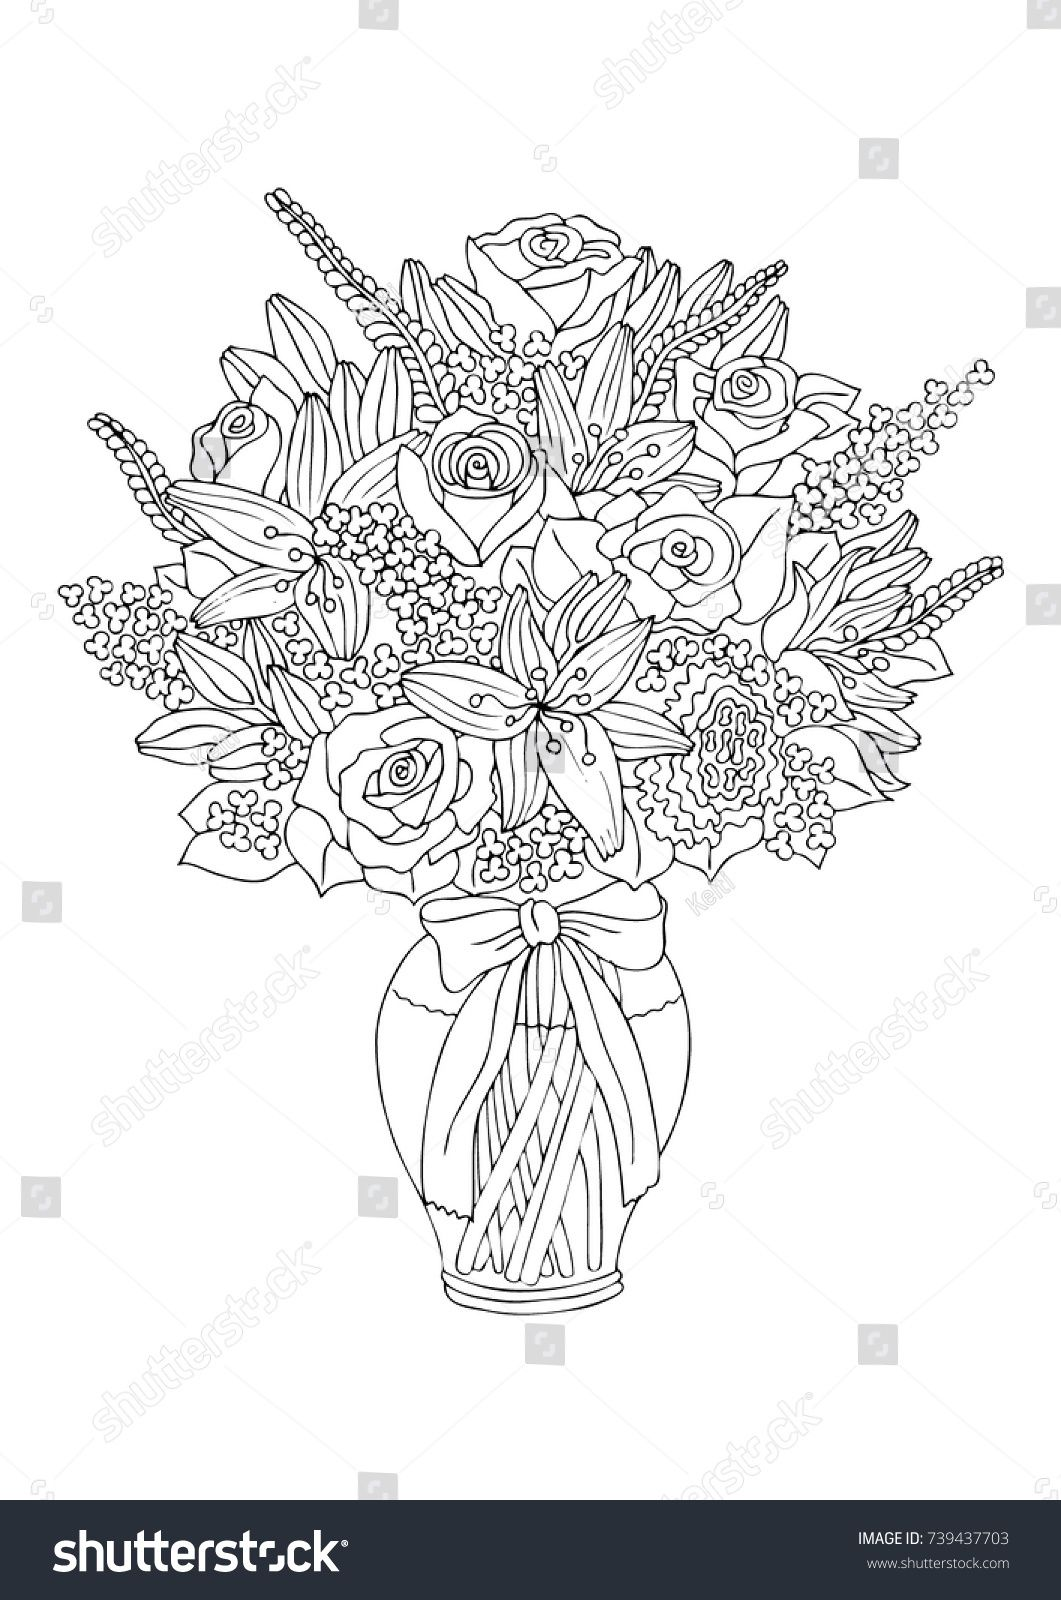 Vase with flowers hand drawn picture sketch for antistress adult